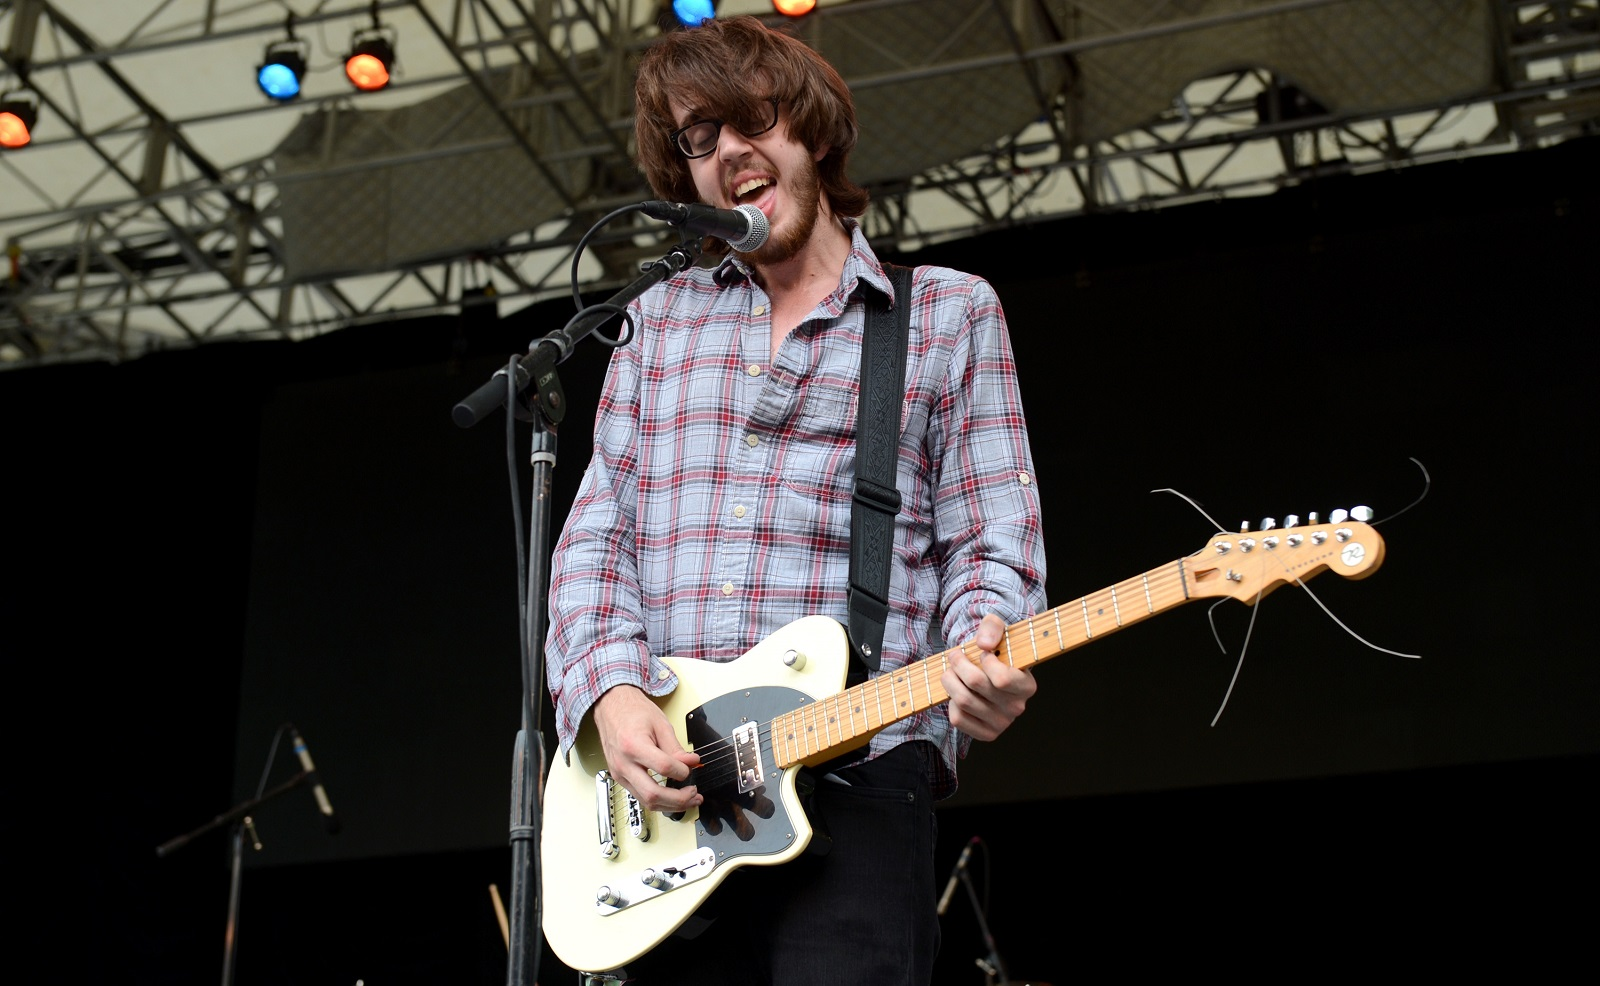 Dylan Baldi of Cloud Nothings performs in New York City in 2012. (Getty Images)